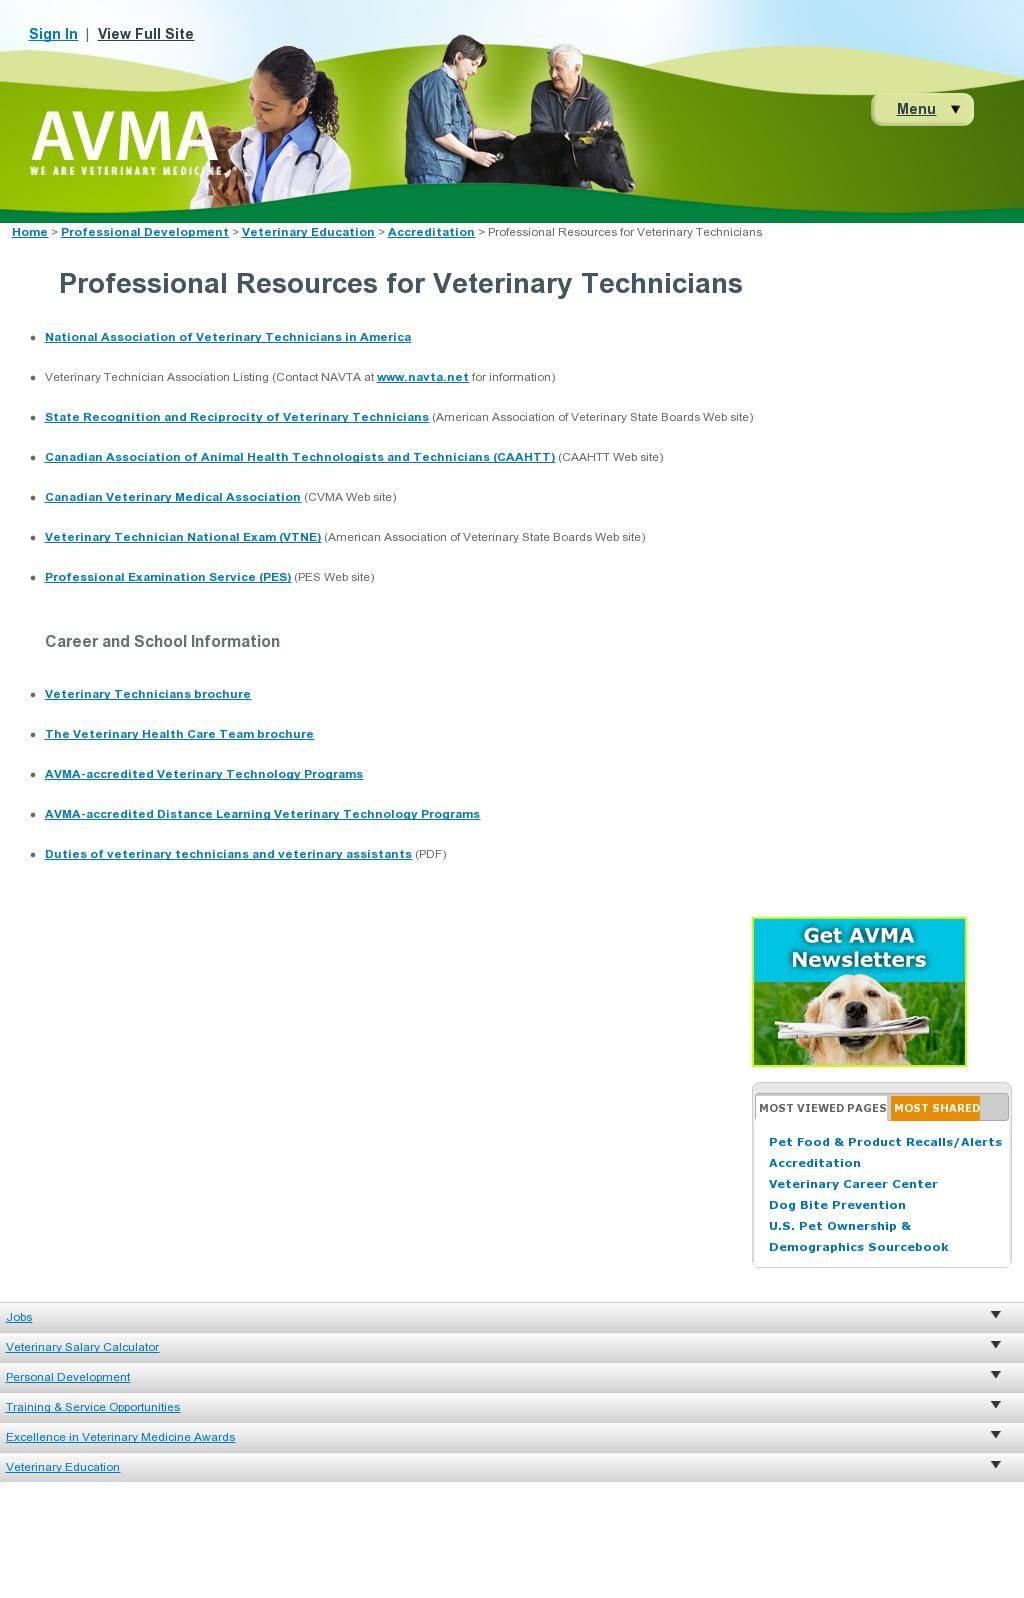 Professional Resources for Vet Techs from AVMA